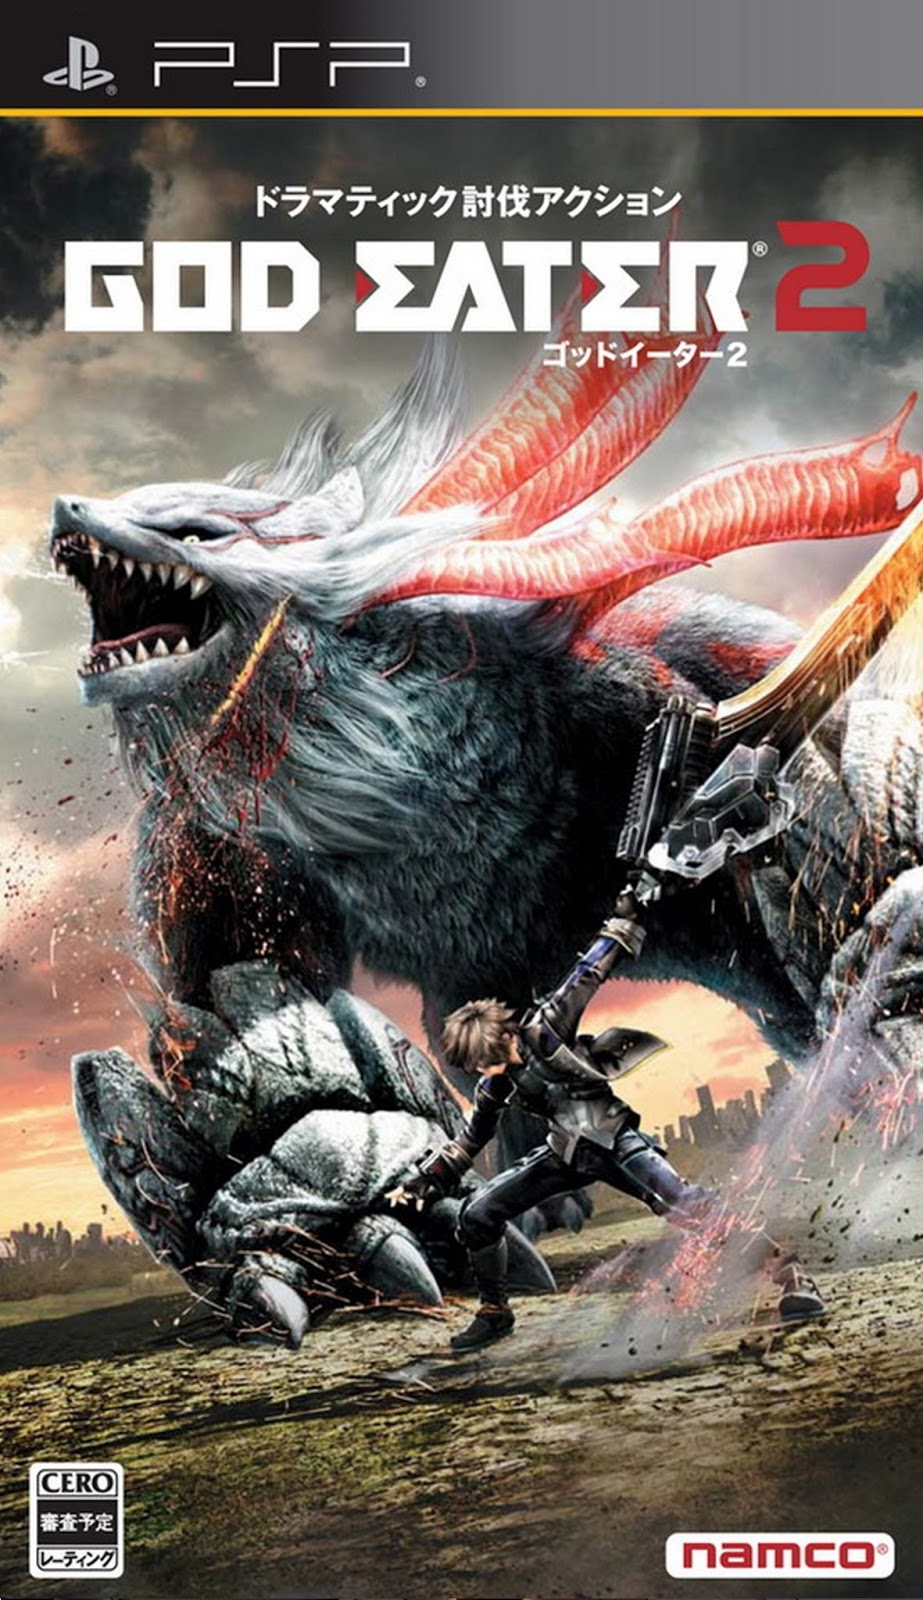 god eater 2 english patch ppsspp android